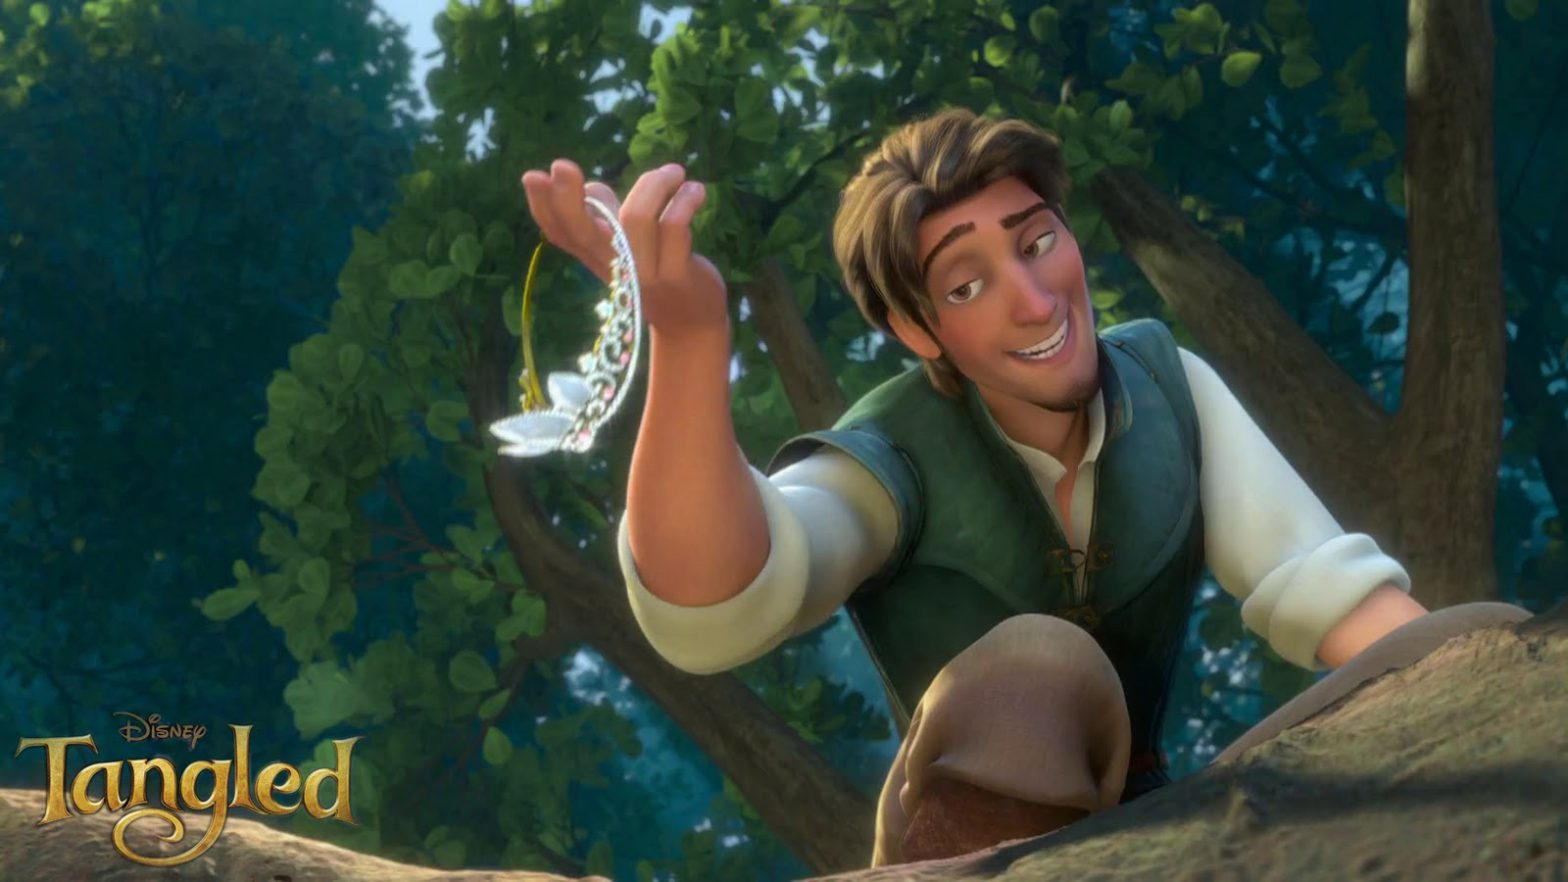 Tangled Movie Review